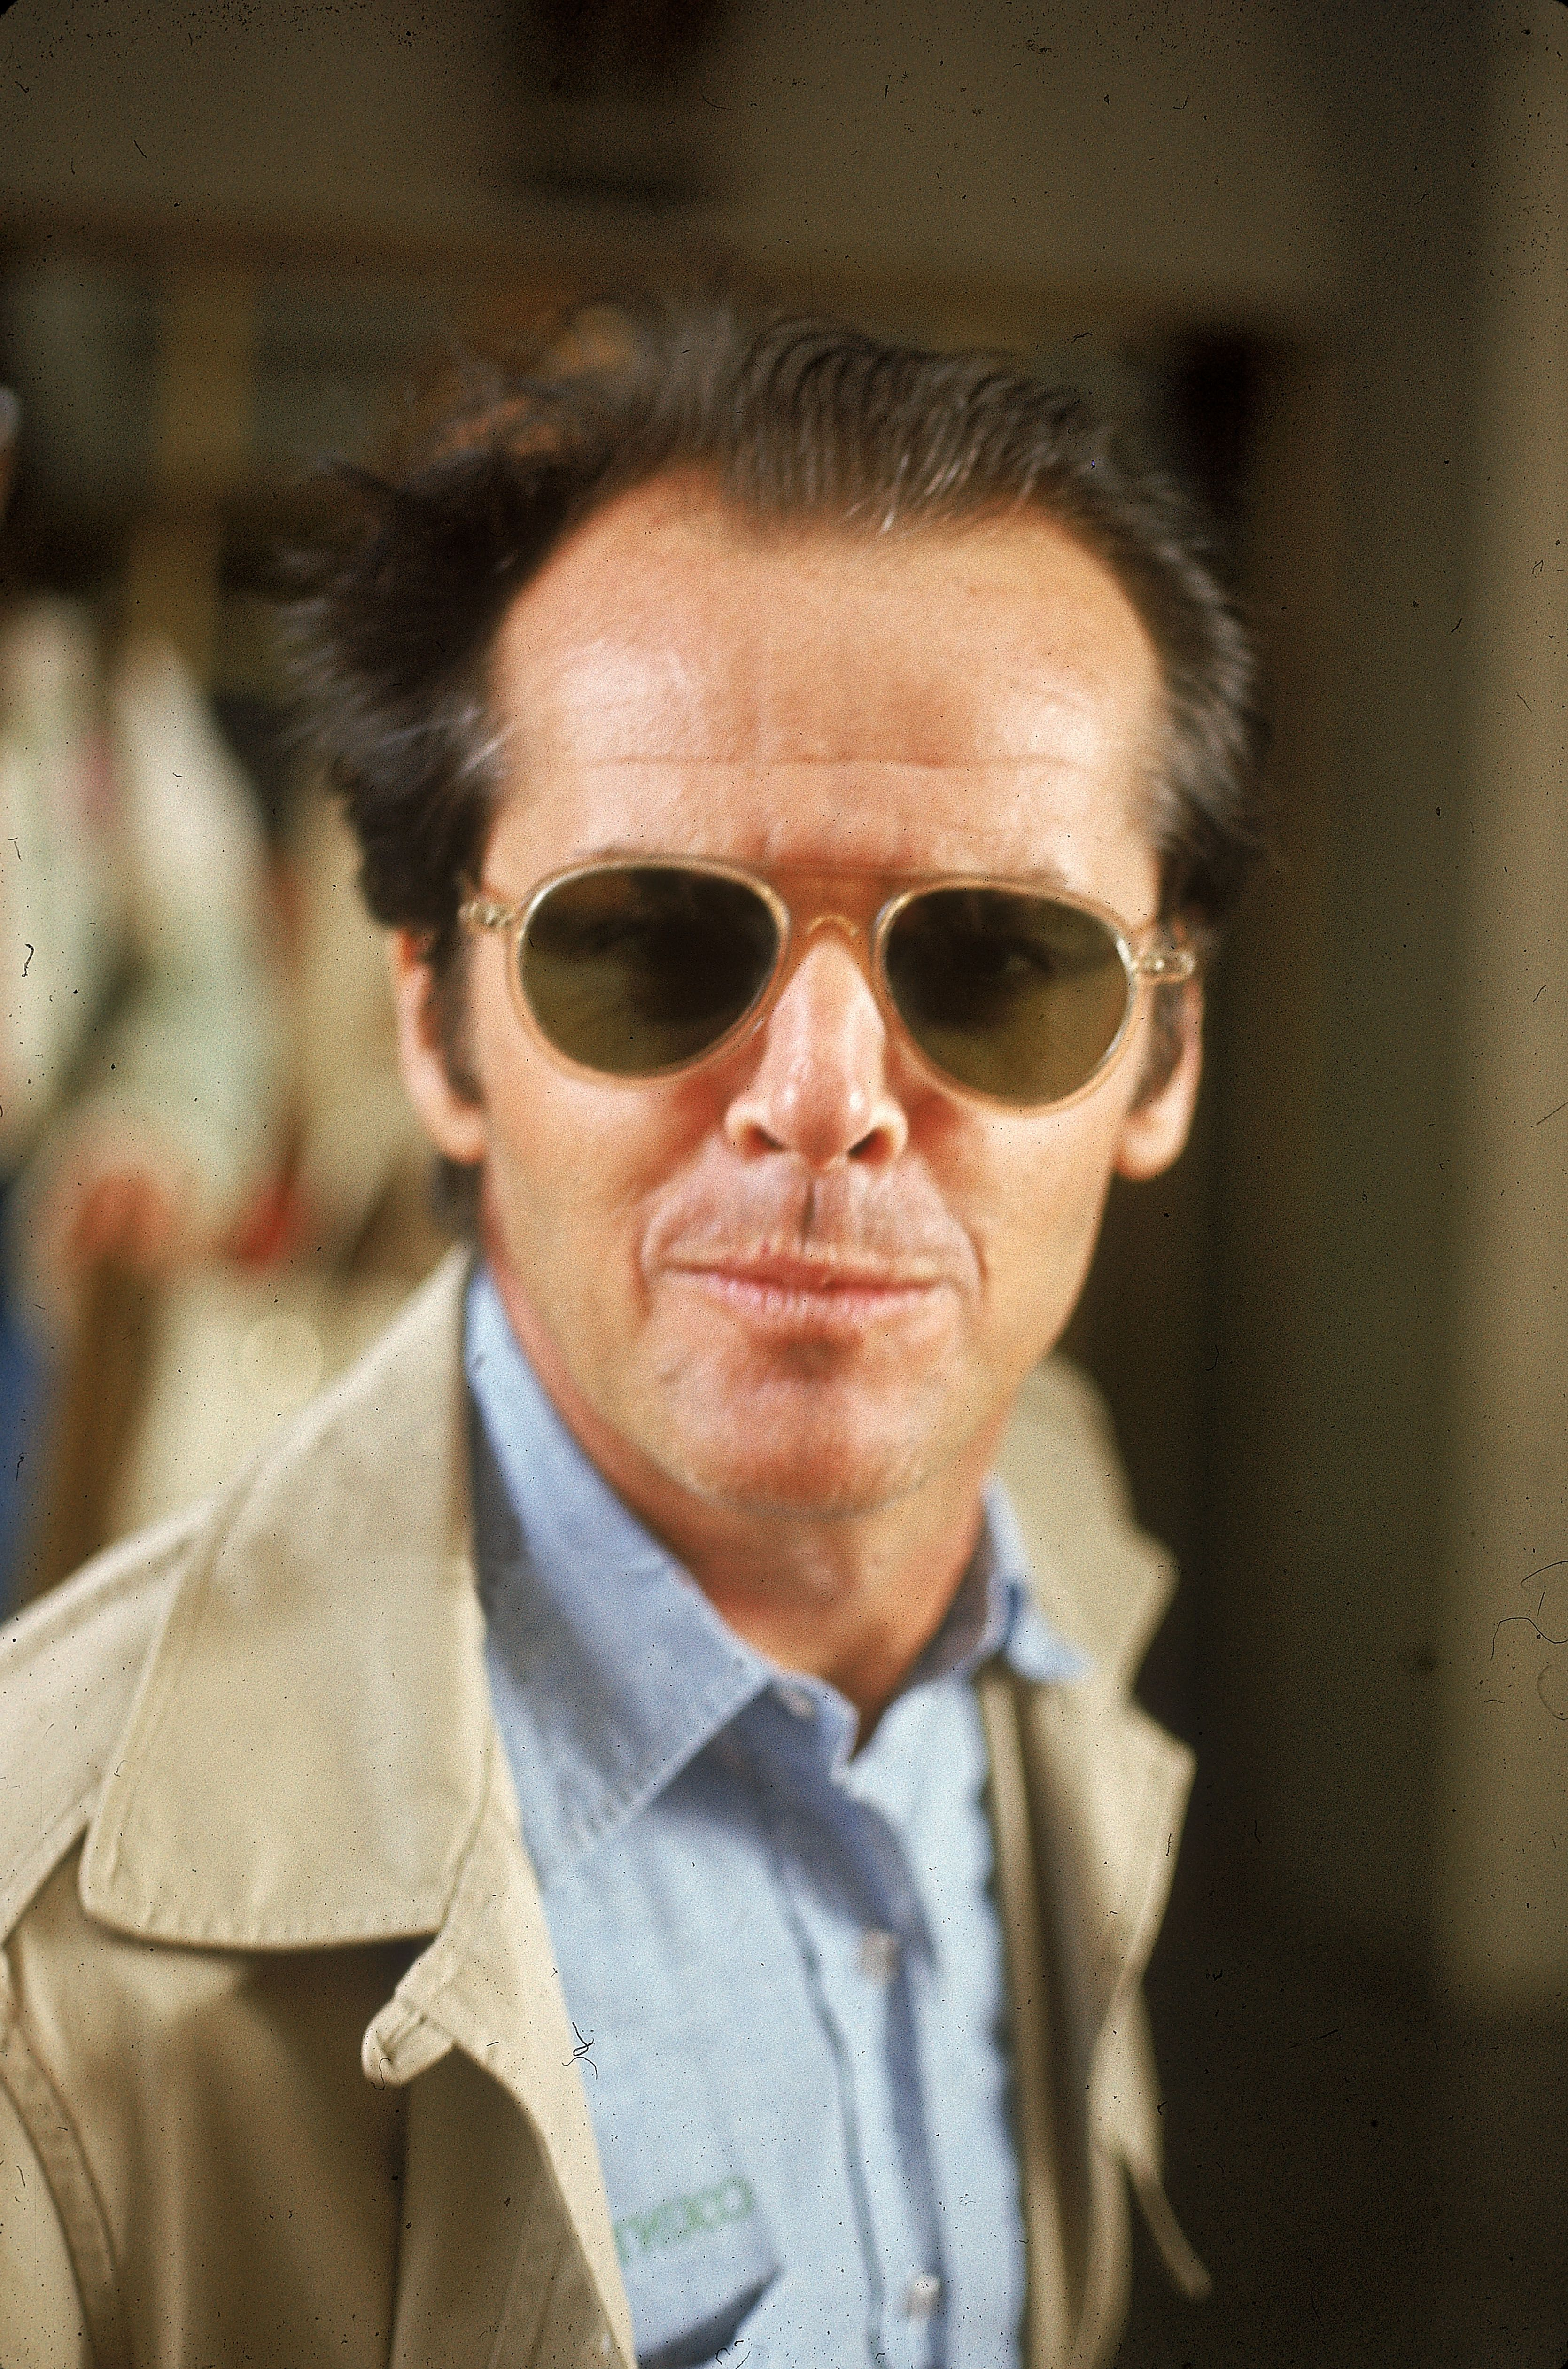 Why Does Jack Nicholson Wears Sunglasses All The Time Once a regular attendee of lakers games, jack's last appearance at the sports venue was in january 2019 with his son ray. esquire